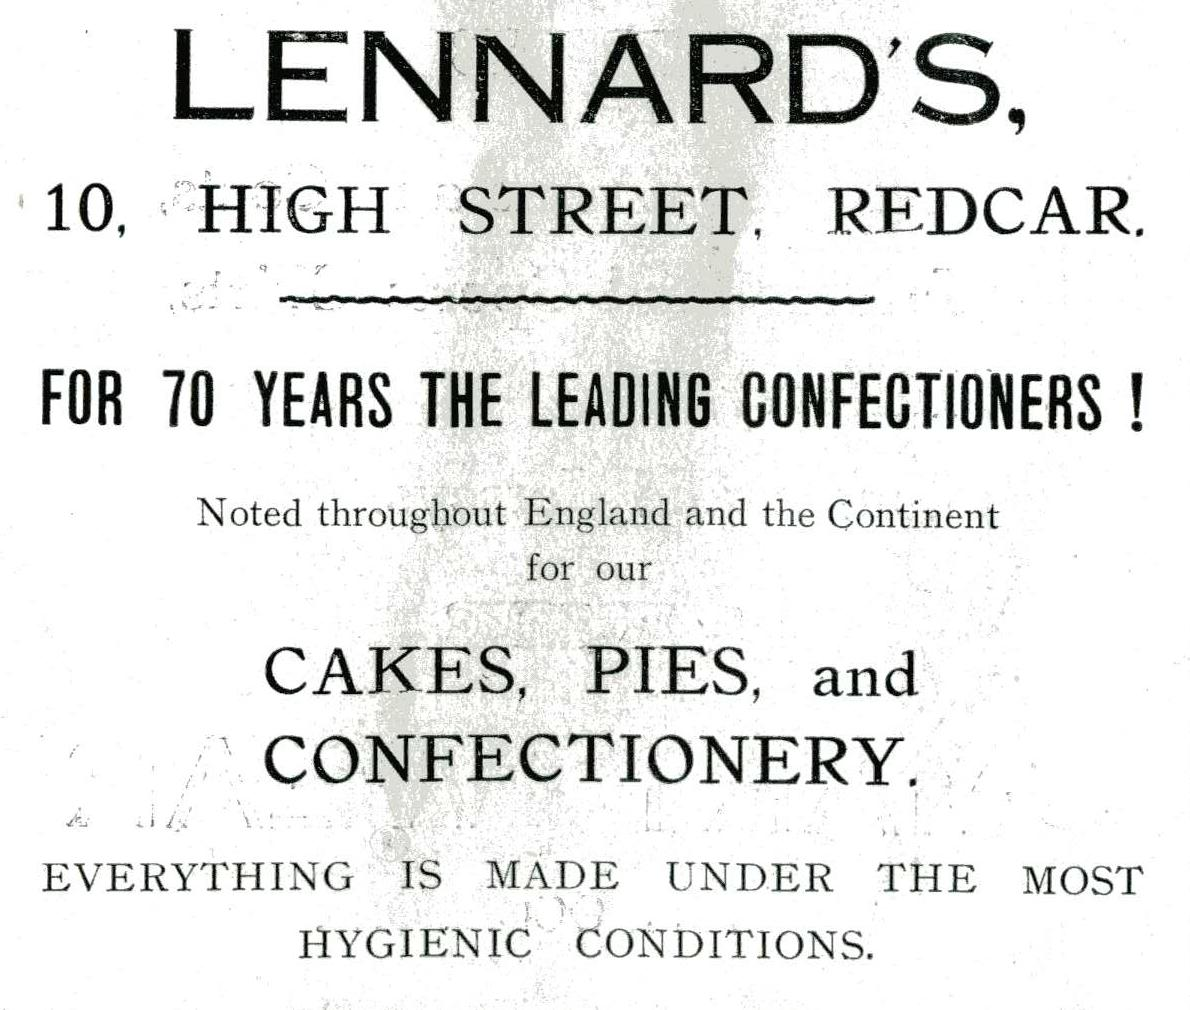 2230leonardsconfectioners10highstreet.jpg